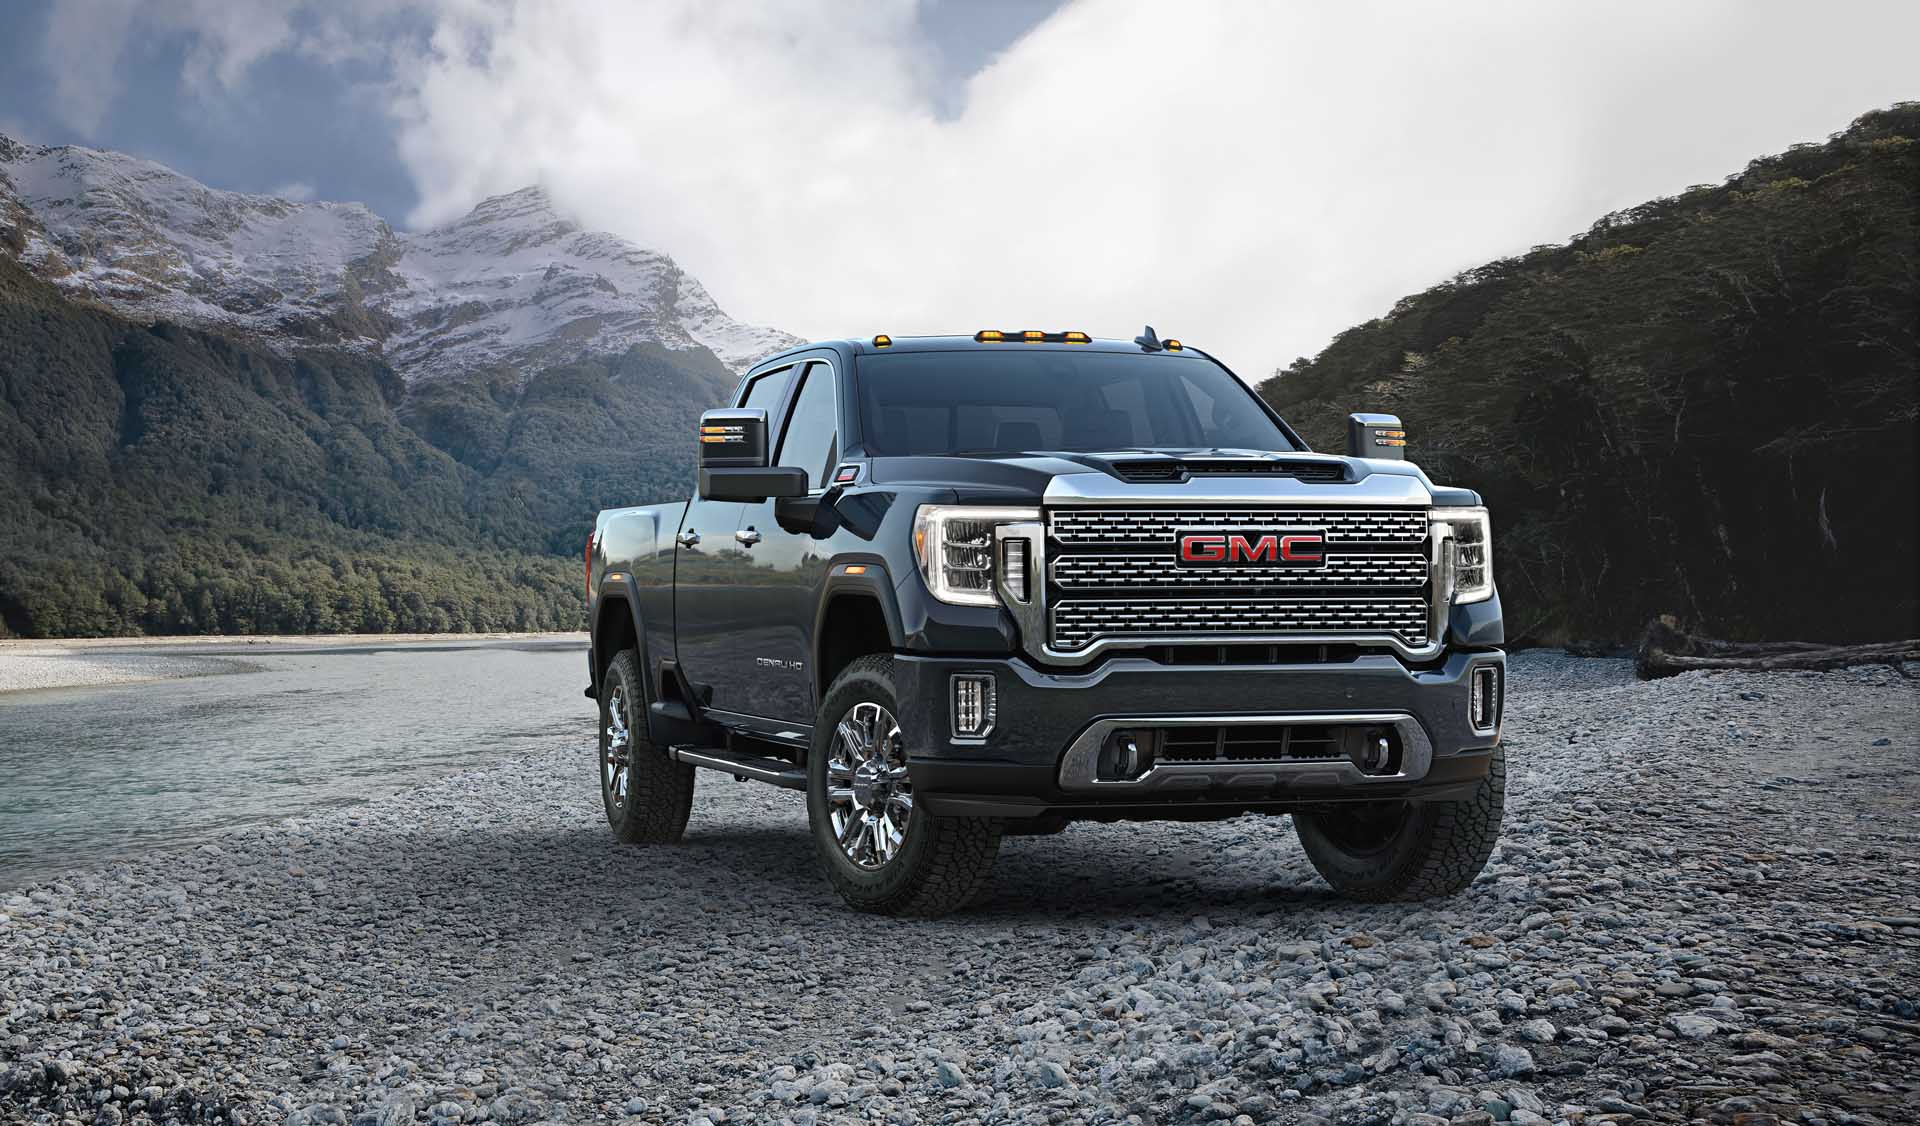 Gmc Drops Price On 2021 Sierra Pickup Turbodiesel Adds Trailering Features